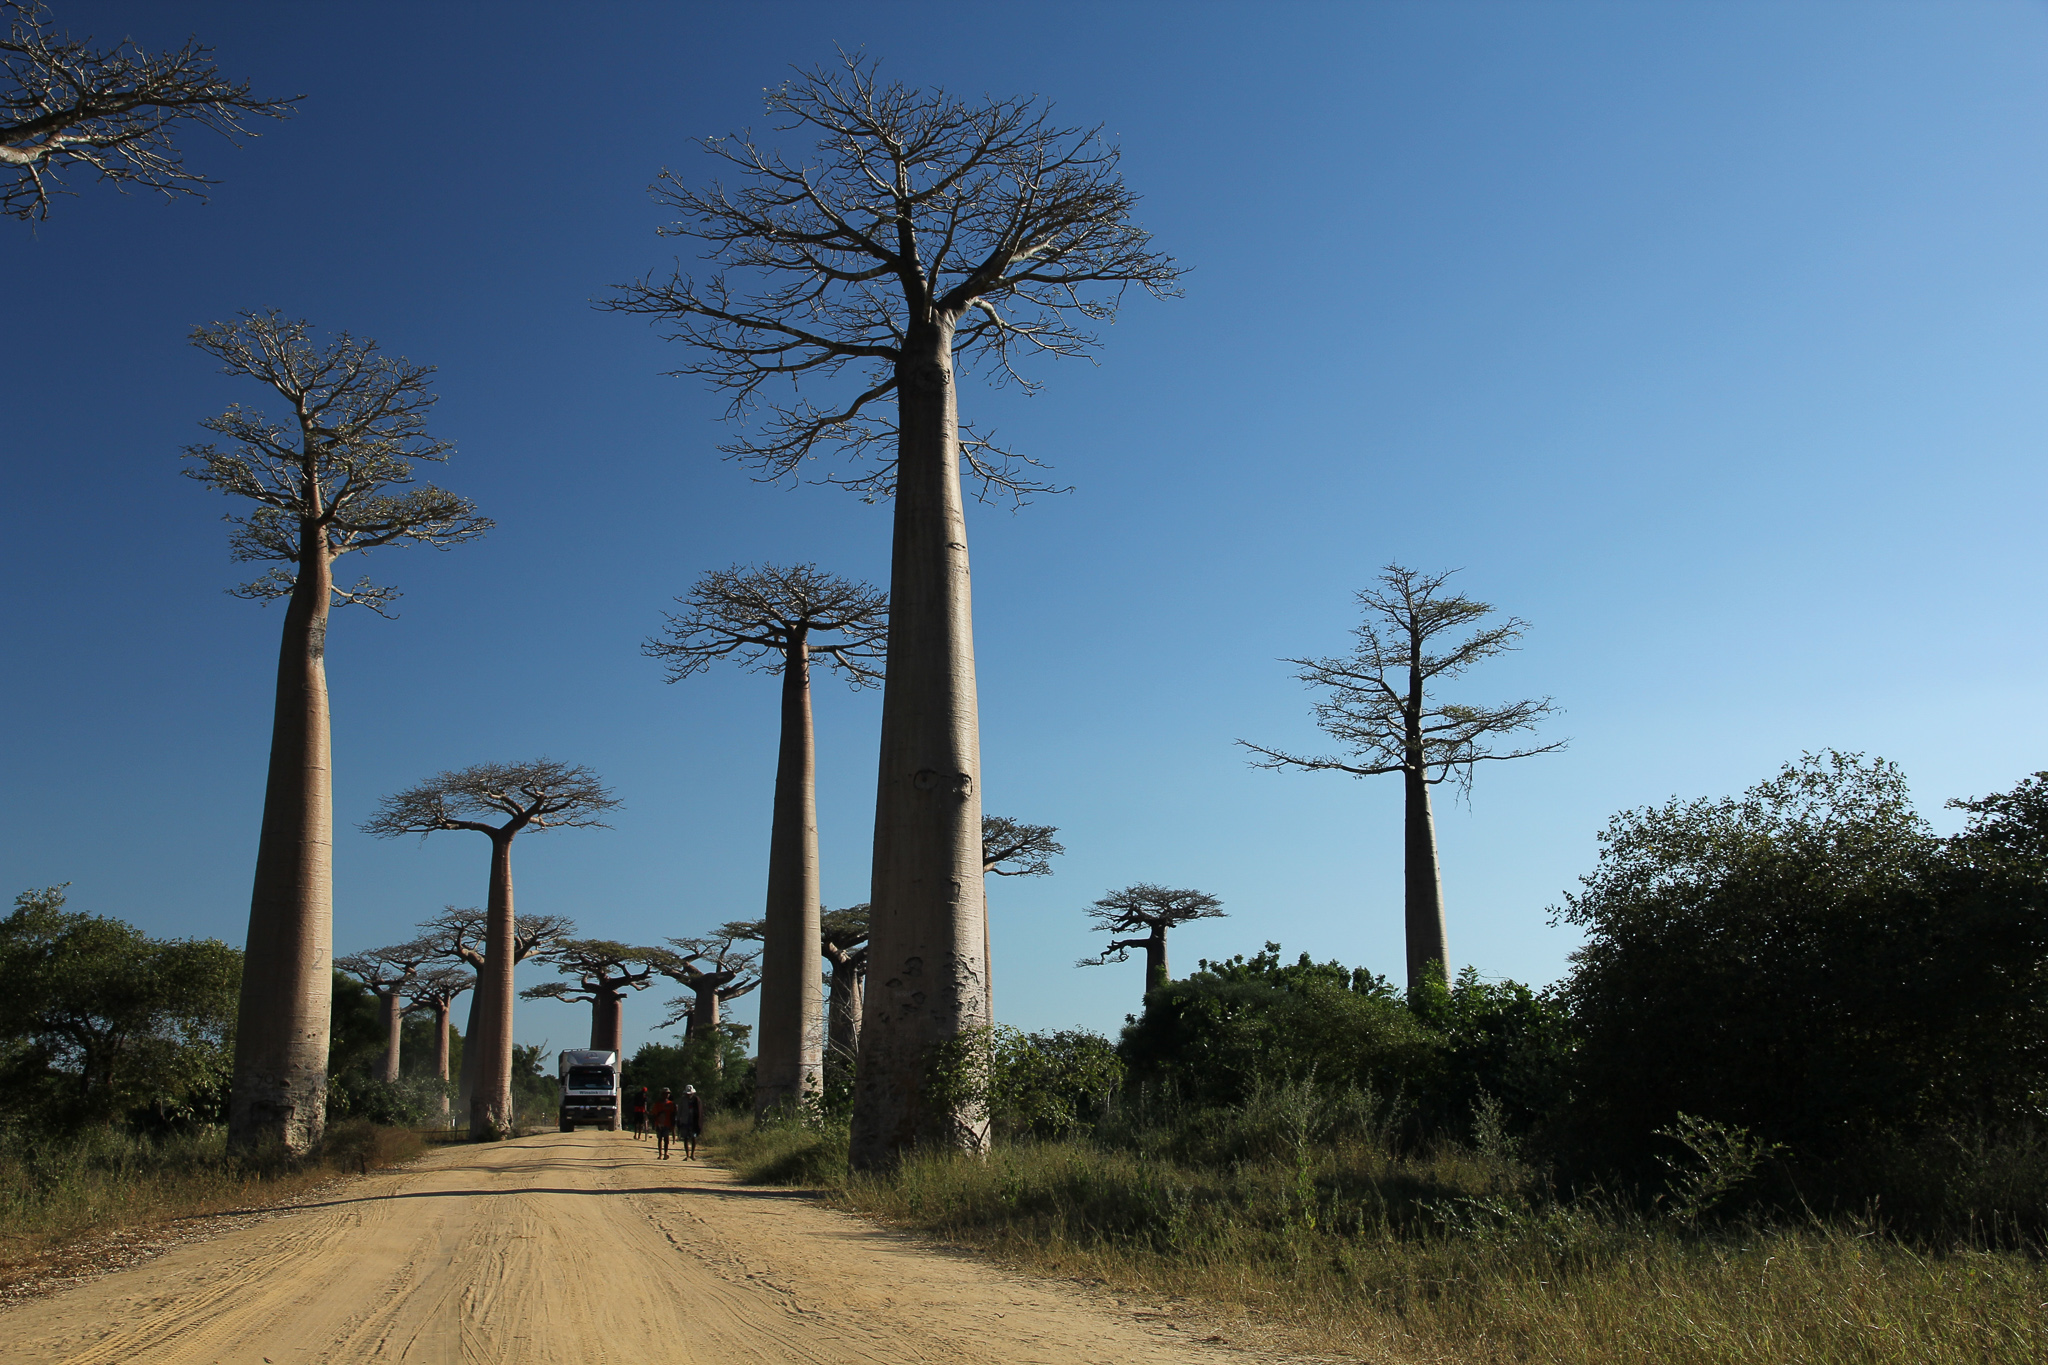 These baobab trees are insanely tall and strange